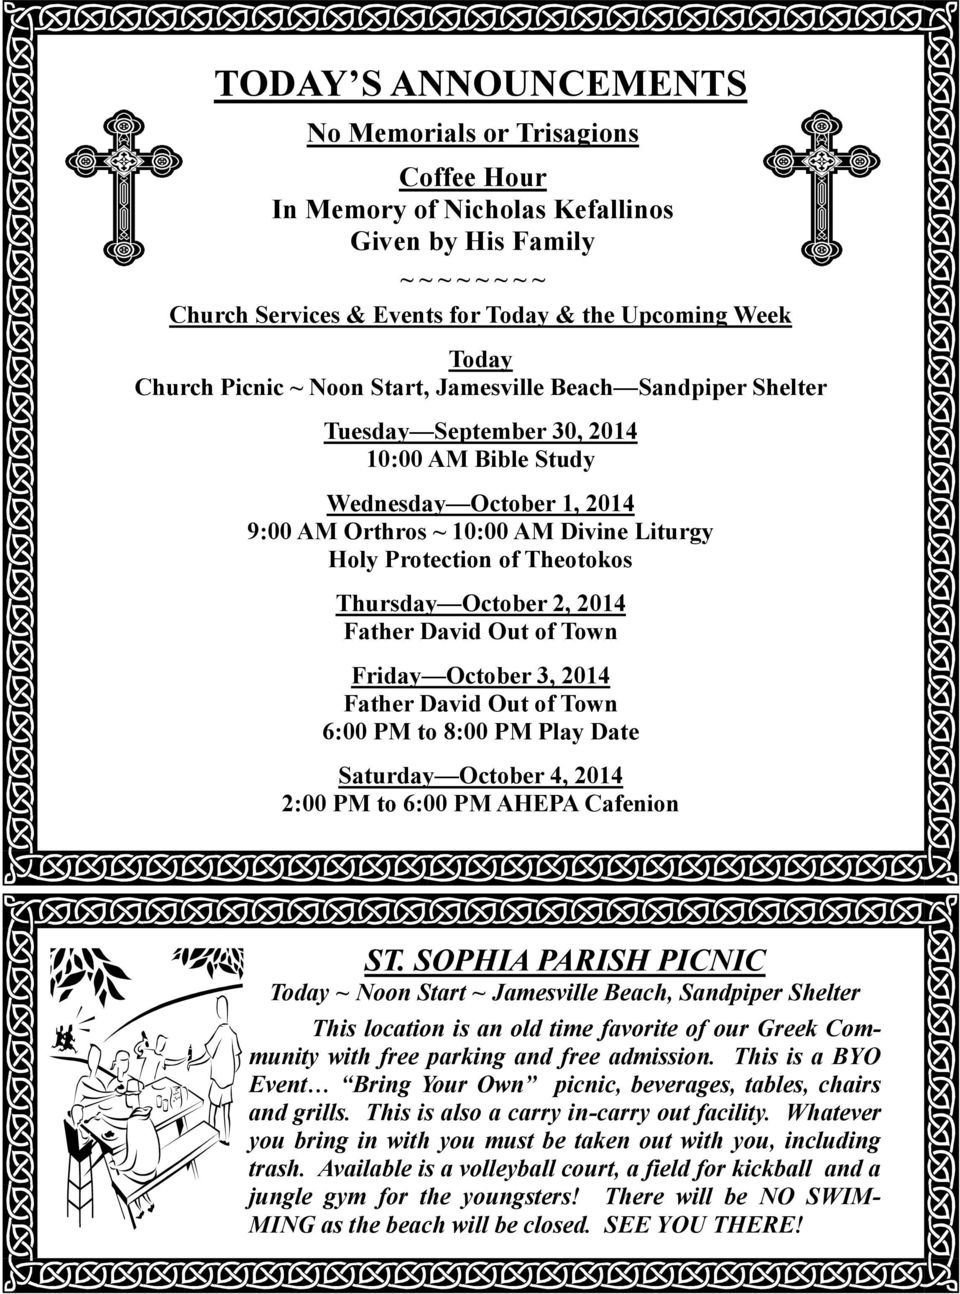 Theotokos Thursday October 2, 2014 Father David Out of Town Friday October 3, 2014 Father David Out of Town 6:00 PM to 8:00 PM Play Date Saturday October 4, 2014 2:00 PM to 6:00 PM AHEPA Cafenion ST.